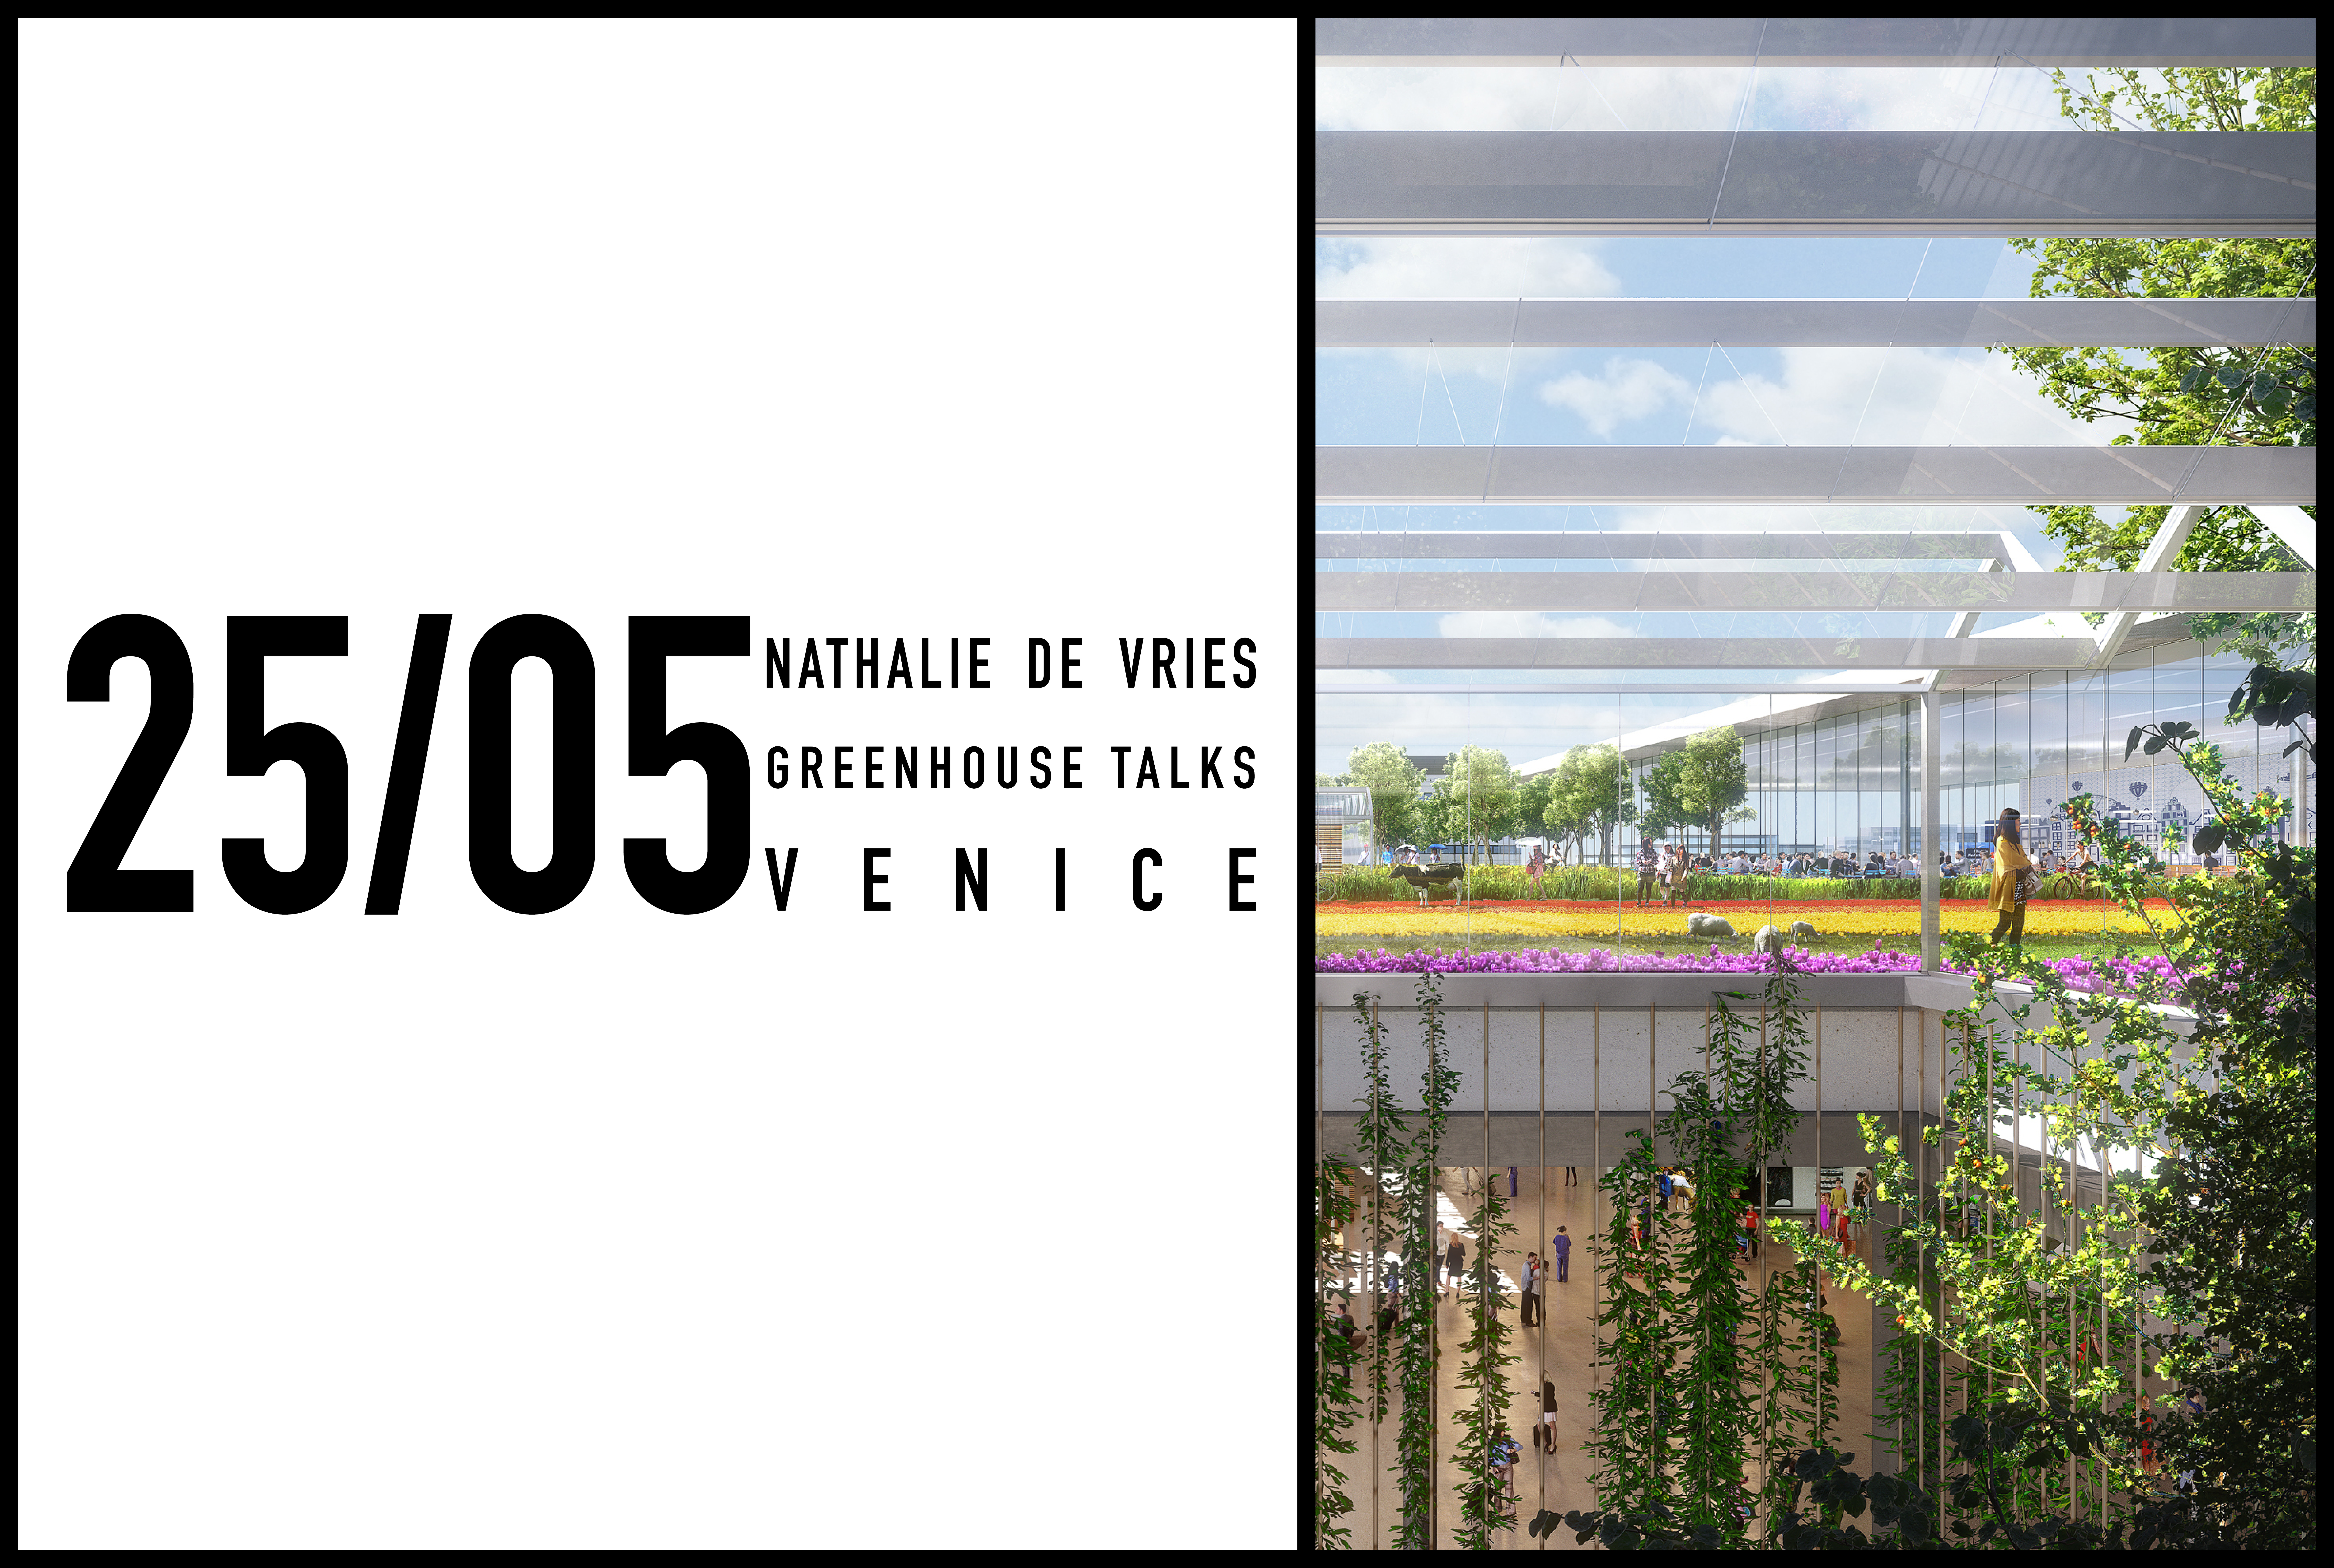 Nathalie de Vries to participate at Venice Biennale's Greenhouse Talks